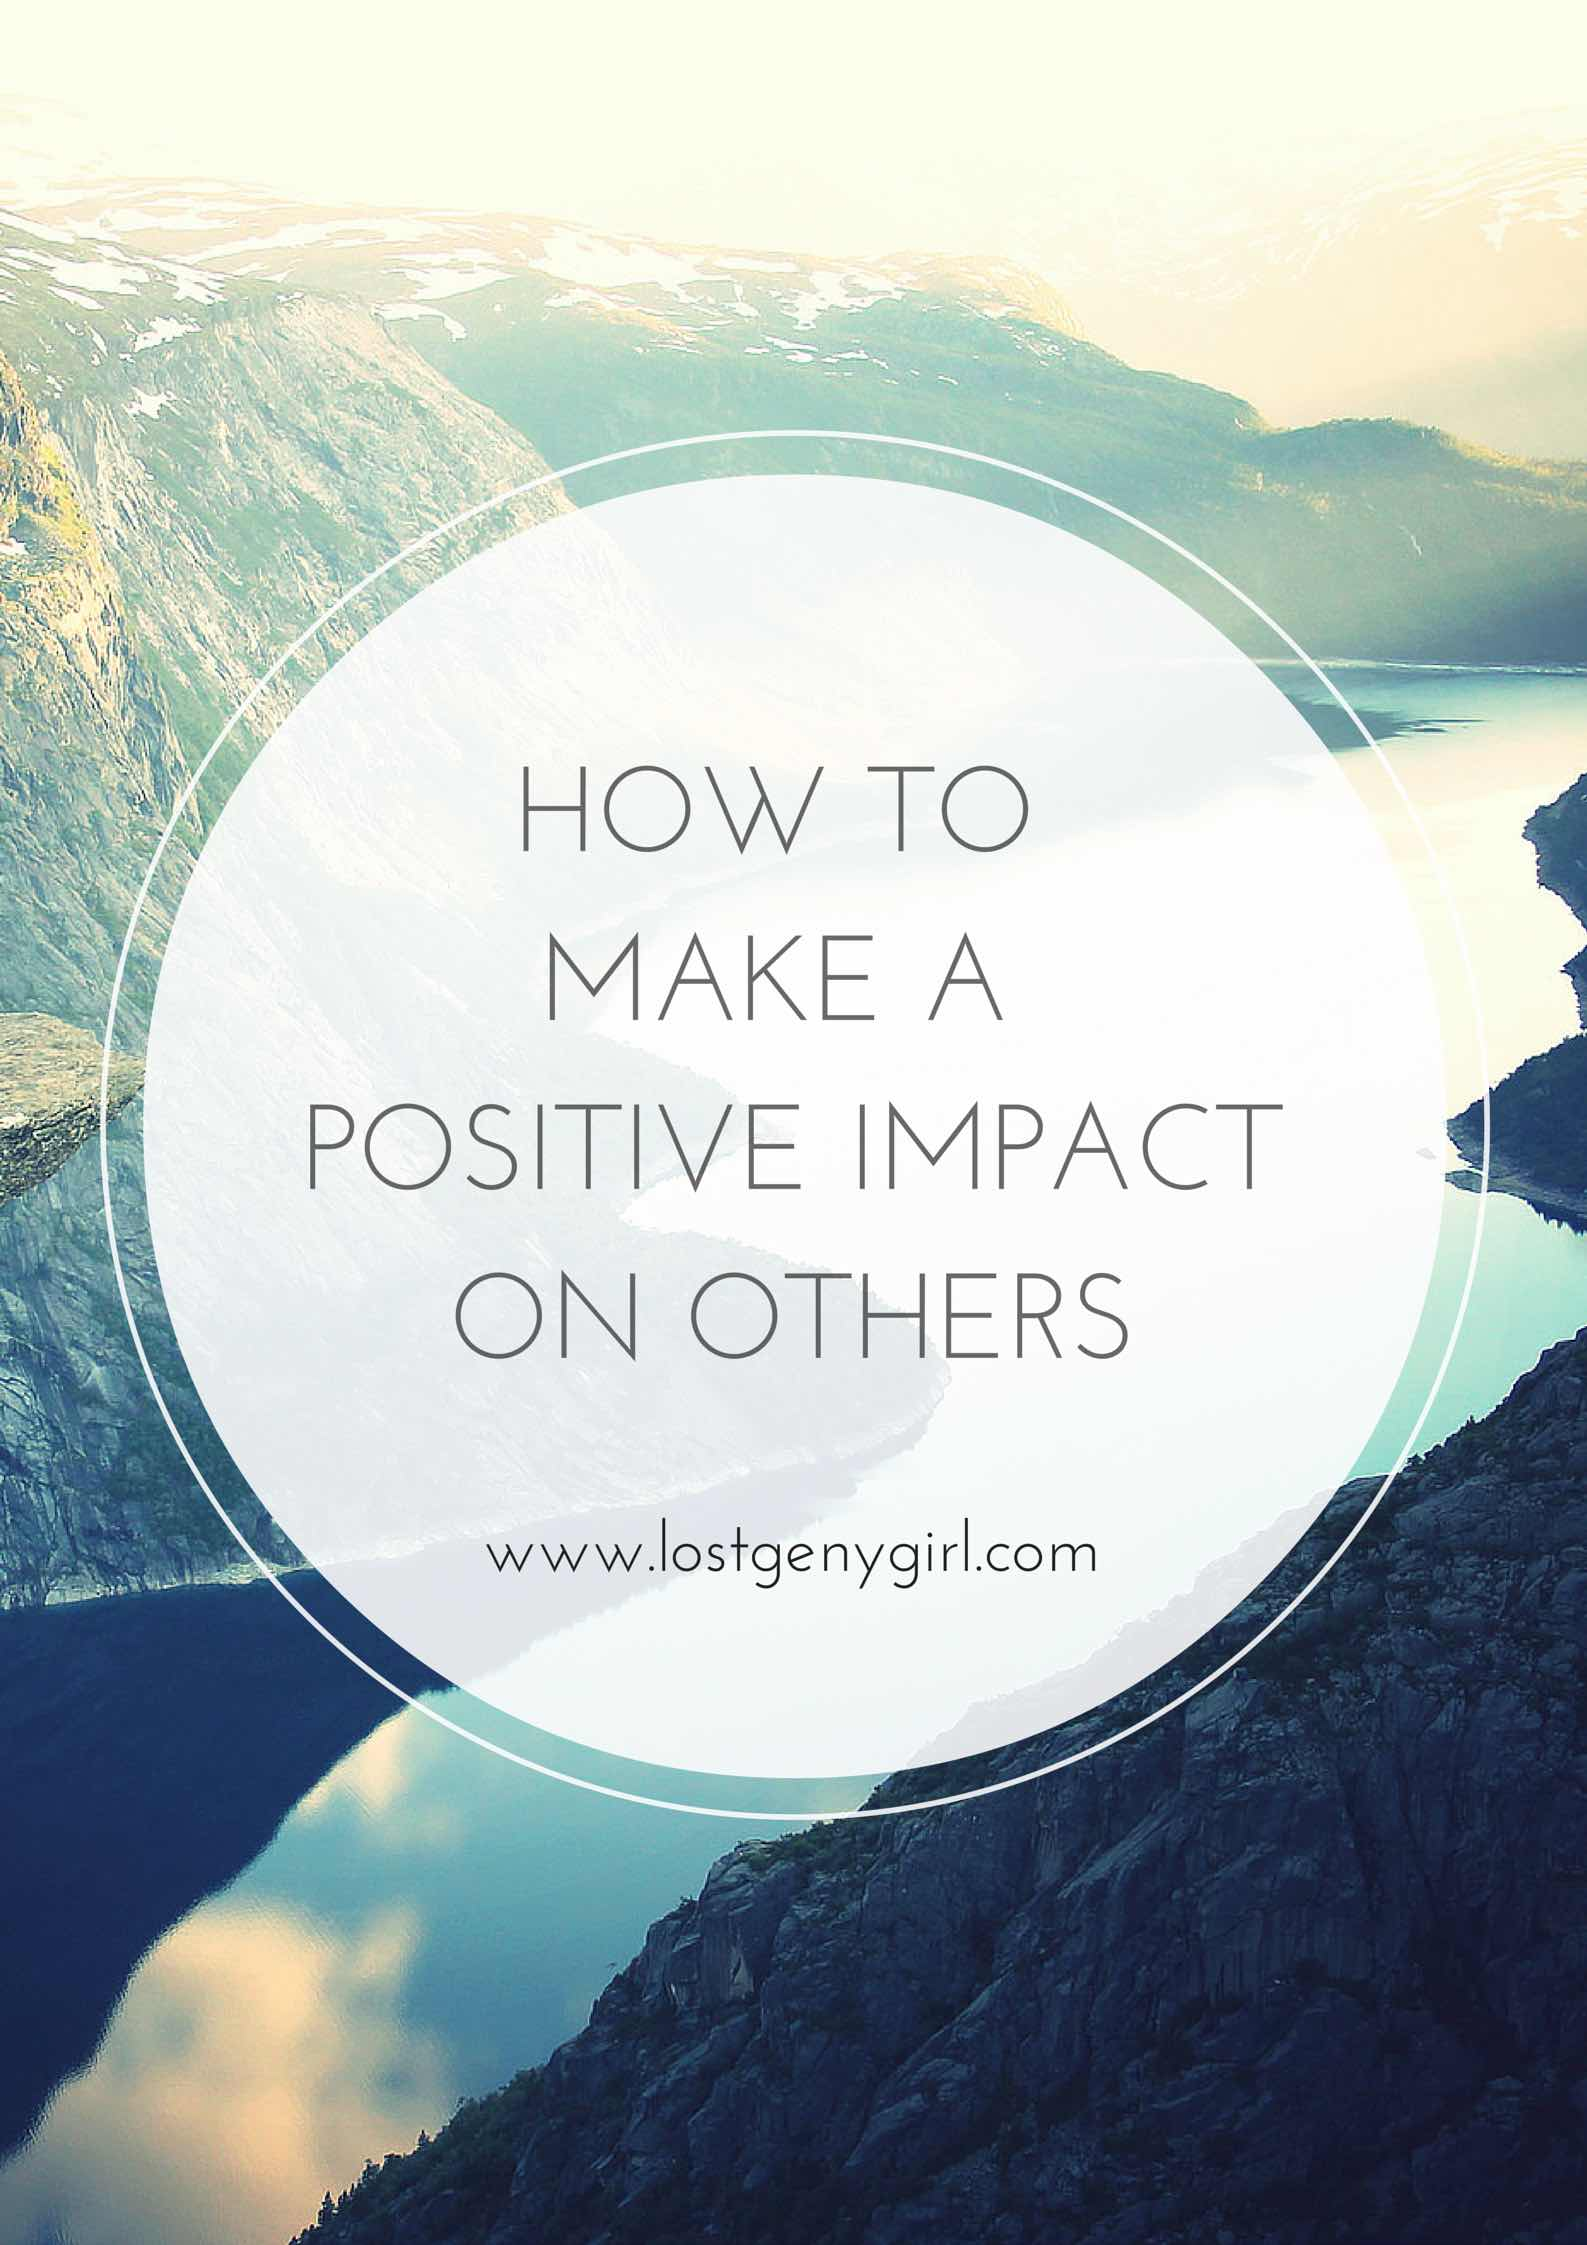 How To Make A Positive Impact On Others